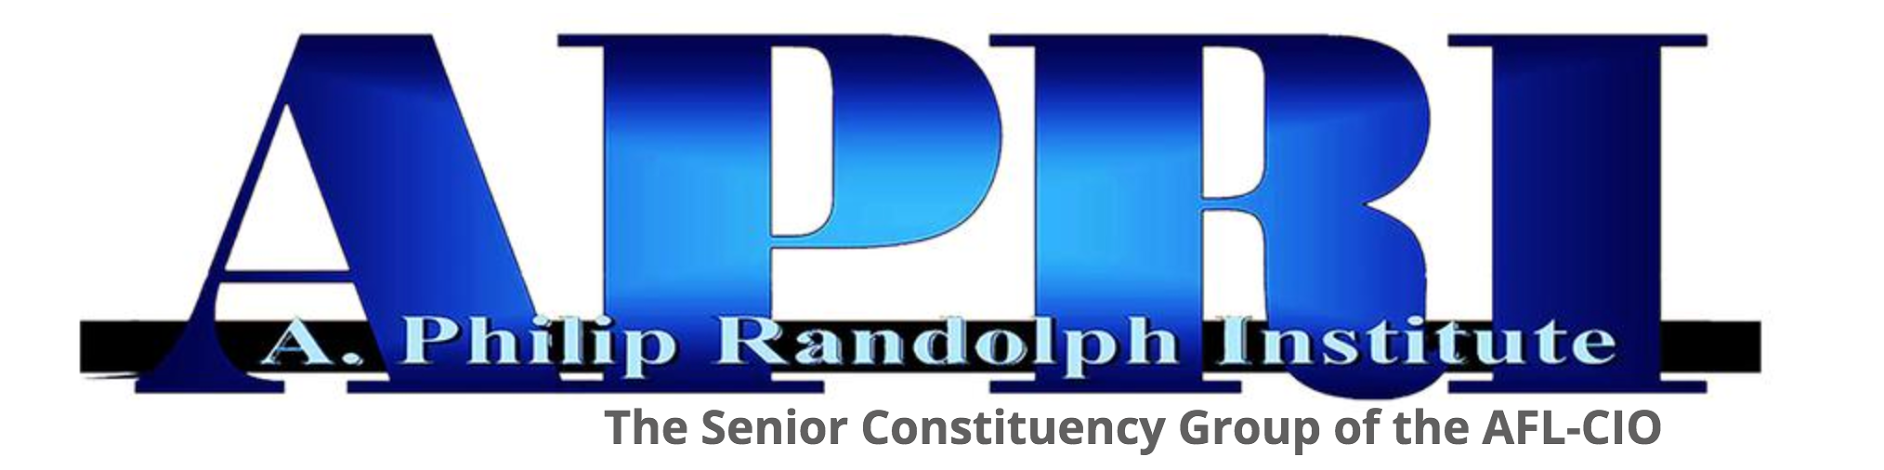 A Philip Randolph Institute Logo